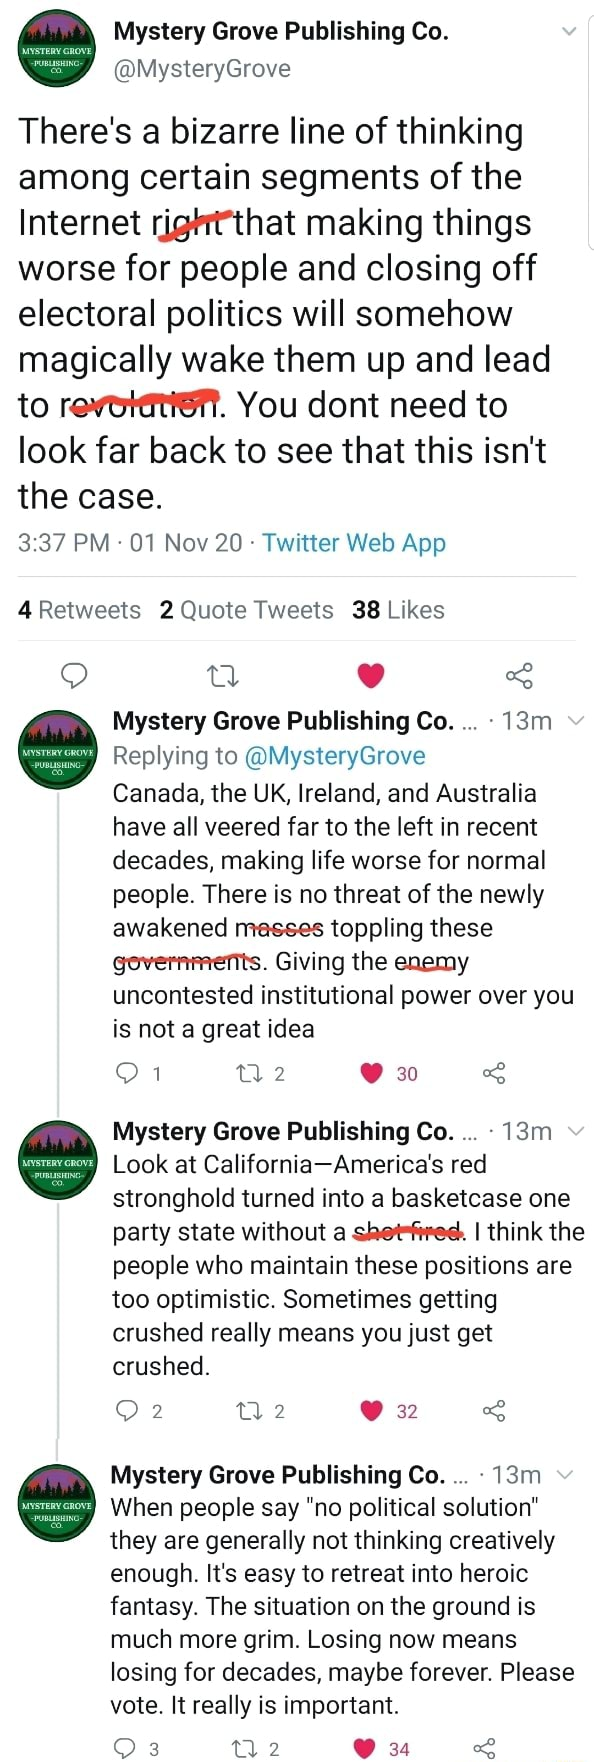 Grove Publishing Co. There's a bizarre line of thinking among certain segments of the Internet right'that making things worse for people and closing off electoral politics will somehow magically wake them up and lead to revotenie . You dont need to look far back to see that this isn't the case. 4Retwests Quote Tweets Likes Mystery Grove Publishing Co. Replying to MysteryGrove Canada, the UK, Ireland, and Australia have all veered far to the left in recent decades, making life worse for normal people. There is no threat of the newly awakened masses toppling these governments. Giving the enemy uncontested institutional power over you is not a great idea 30 Mystery Grove Publishing Co. Look at California America's red stronghold turned into a basketcase one party state without a shet fred. I